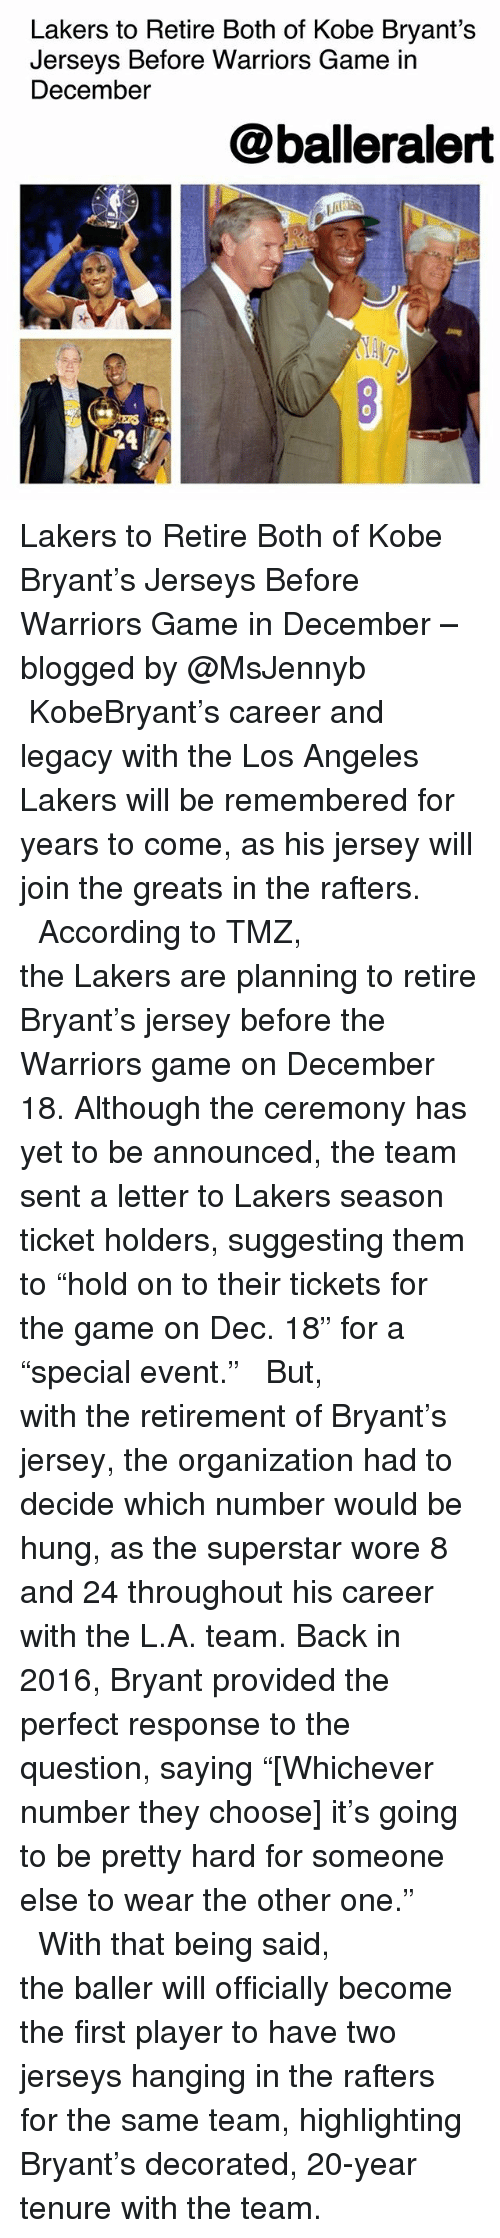 "Senting: Lakers to Retire Both of Kobe Bryant's  Jerseys Before Warriors Game in  December  @balleralert  0  SERS  24 Lakers to Retire Both of Kobe Bryant's Jerseys Before Warriors Game in December – blogged by @MsJennyb ⠀⠀⠀⠀⠀⠀⠀ ⠀⠀⠀⠀⠀⠀⠀ KobeBryant's career and legacy with the Los Angeles Lakers will be remembered for years to come, as his jersey will join the greats in the rafters. ⠀⠀⠀⠀⠀⠀⠀ ⠀⠀⠀⠀⠀⠀⠀ According to TMZ, the Lakers are planning to retire Bryant's jersey before the Warriors game on December 18. Although the ceremony has yet to be announced, the team sent a letter to Lakers season ticket holders, suggesting them to ""hold on to their tickets for the game on Dec. 18"" for a ""special event."" ⠀⠀⠀⠀⠀⠀⠀ ⠀⠀⠀⠀⠀⠀⠀ But, with the retirement of Bryant's jersey, the organization had to decide which number would be hung, as the superstar wore 8 and 24 throughout his career with the L.A. team. Back in 2016, Bryant provided the perfect response to the question, saying ""[Whichever number they choose] it's going to be pretty hard for someone else to wear the other one."" ⠀⠀⠀⠀⠀⠀⠀ ⠀⠀⠀⠀⠀⠀⠀ With that being said, the baller will officially become the first player to have two jerseys hanging in the rafters for the same team, highlighting Bryant's decorated, 20-year tenure with the team."